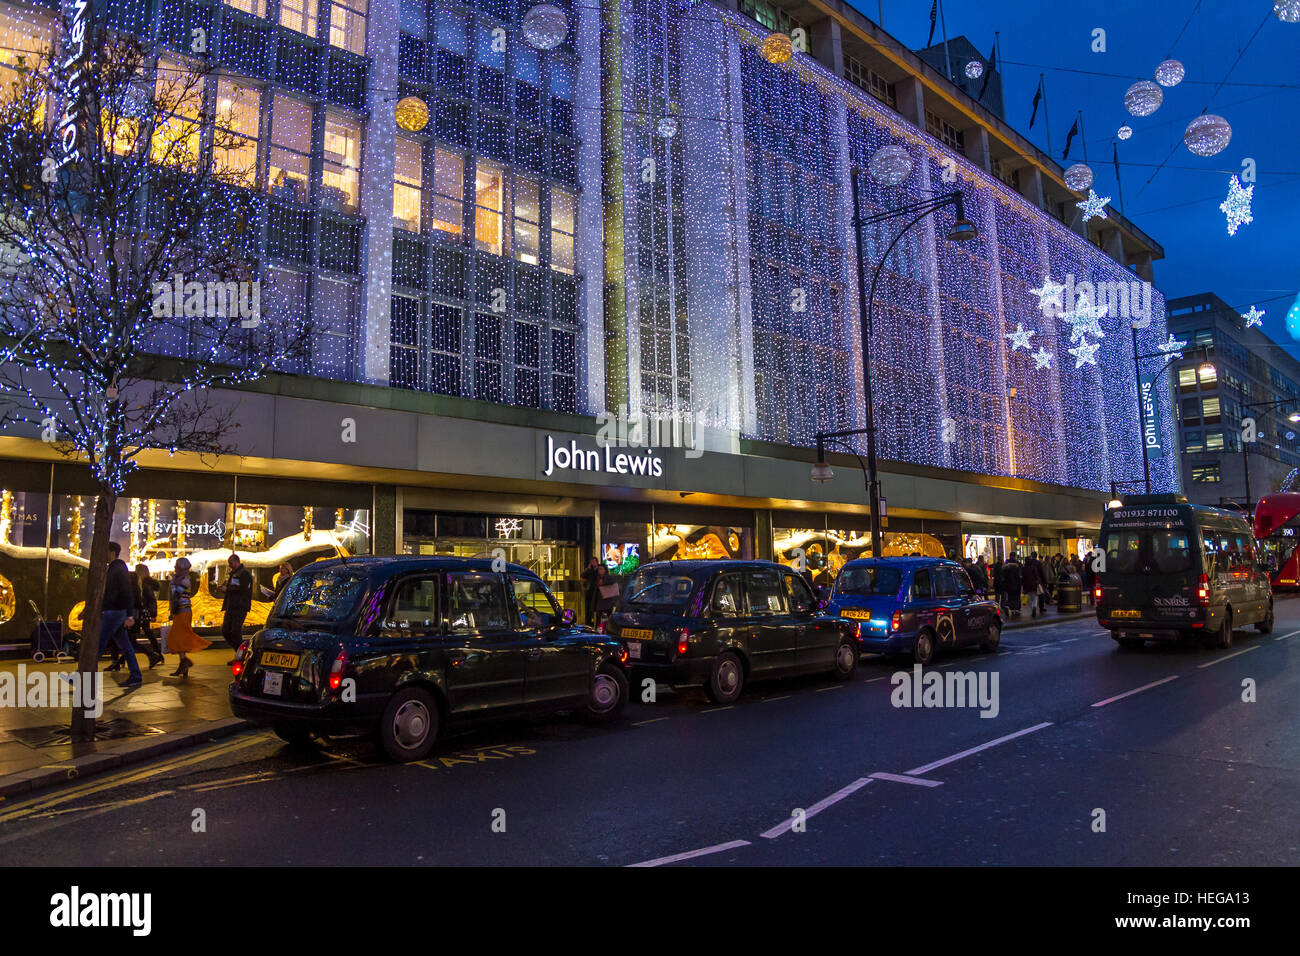 Line of Black London Taxis outside John Lewis Department Store at Christmas Time waiting to pick up Christmas Shoppers,Oxford - Stock Image